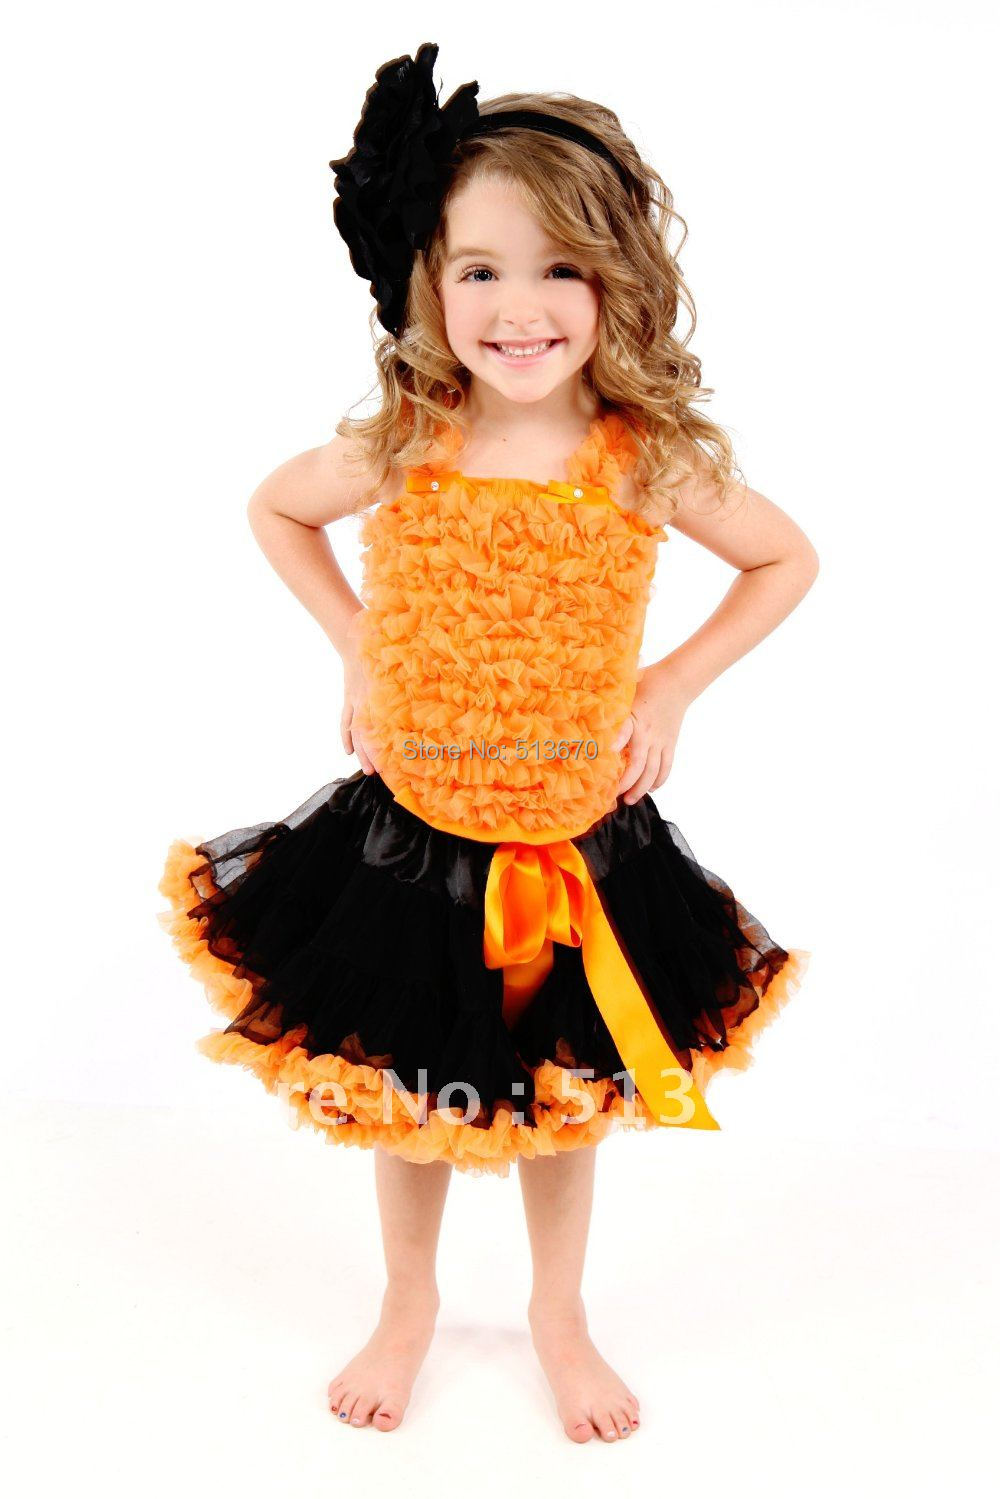 Halloween Black Orange Pettiskirt Matching Orange Ruffles Tank Top MAMM332